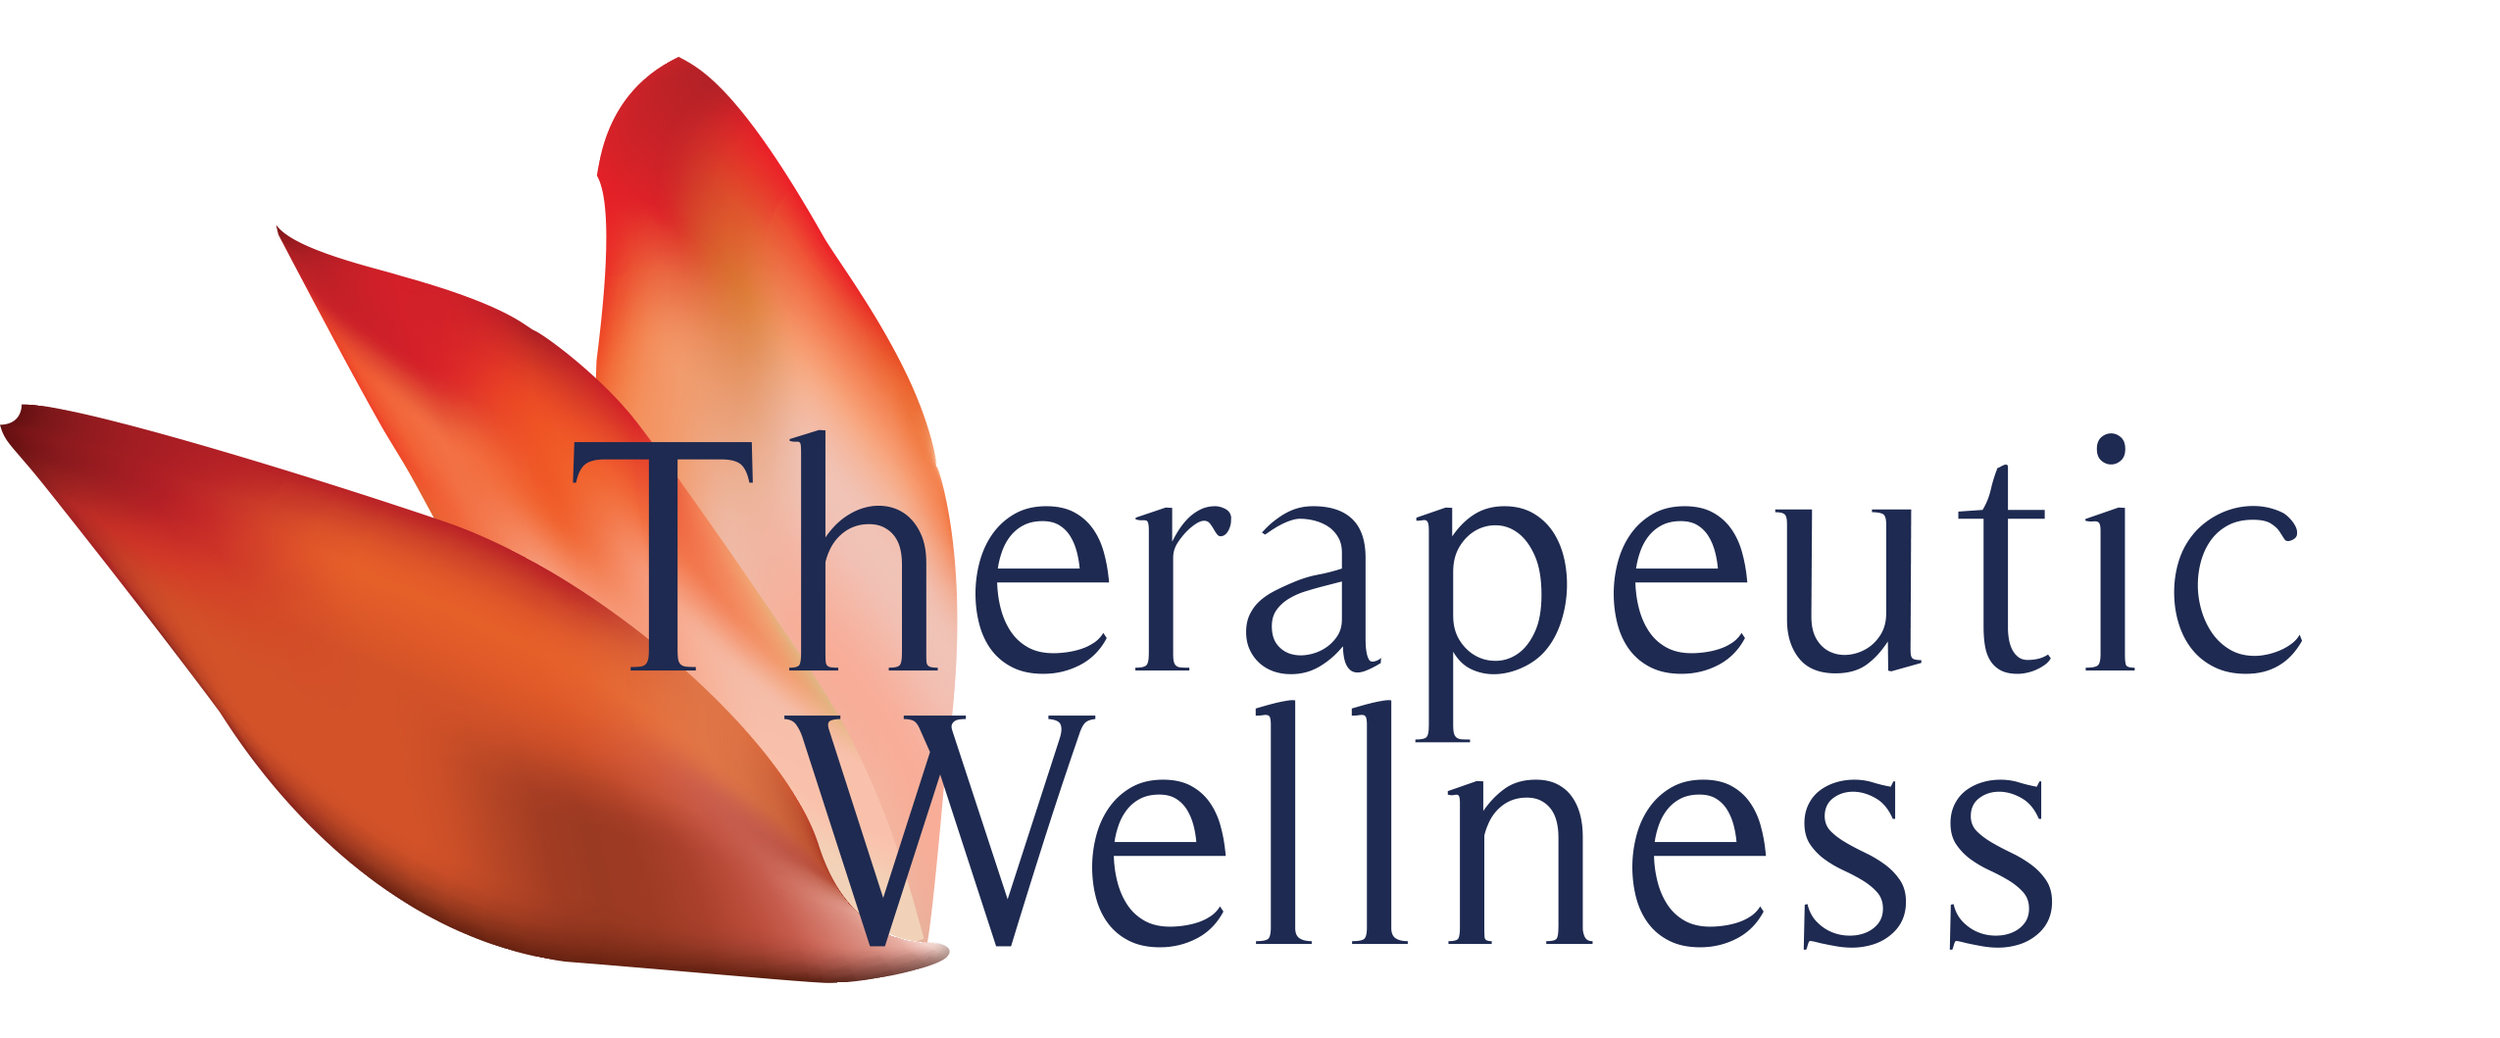 Therapeutic Wellness Final Blue (Web-White) (002).jpg